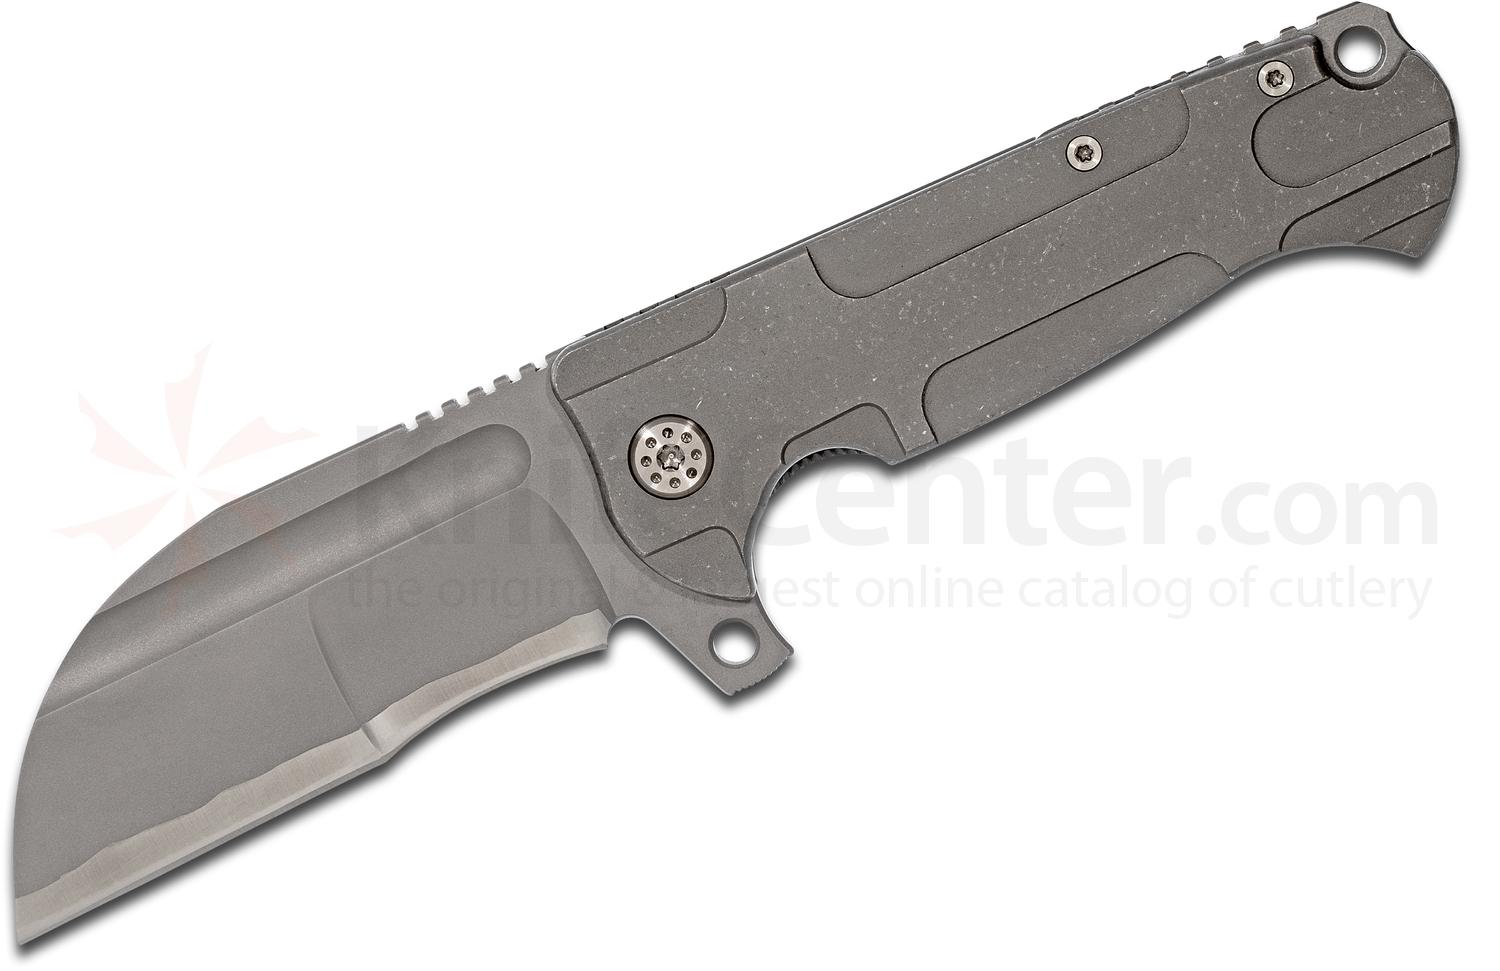 Andre De Villiers Knives Wharny #1 Flipper 4.125 inch M390 Simulated Hamon Blade, Stonewashed Titanium Handles